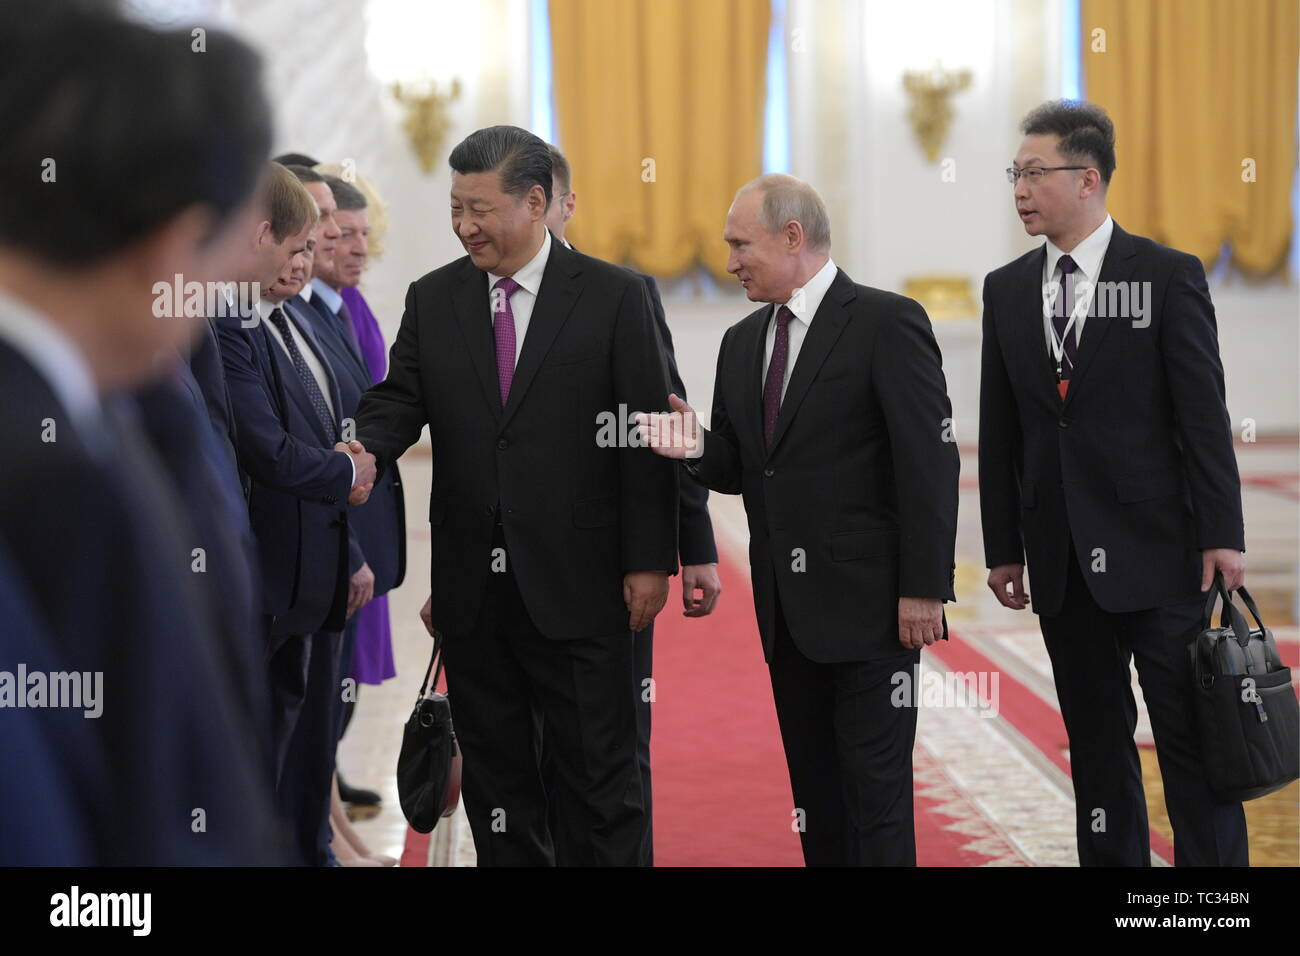 Moscow, Russia. 05th June, 2019. MOSCOW, RUSSIA - JUNE 5, 2019: Russia's President Vladimir Putin (2nd R) introduces Russian officials to China's President Xi Jinping (3rd R) before Russian-Chinese talks in the Moscow Kremlin; the Chinese leader is on a three-day state visit to Russia. Alexei Druzhinin/Russian Presidential Press and Information Office/TASS Credit: ITAR-TASS News Agency/Alamy Live News - Stock Image